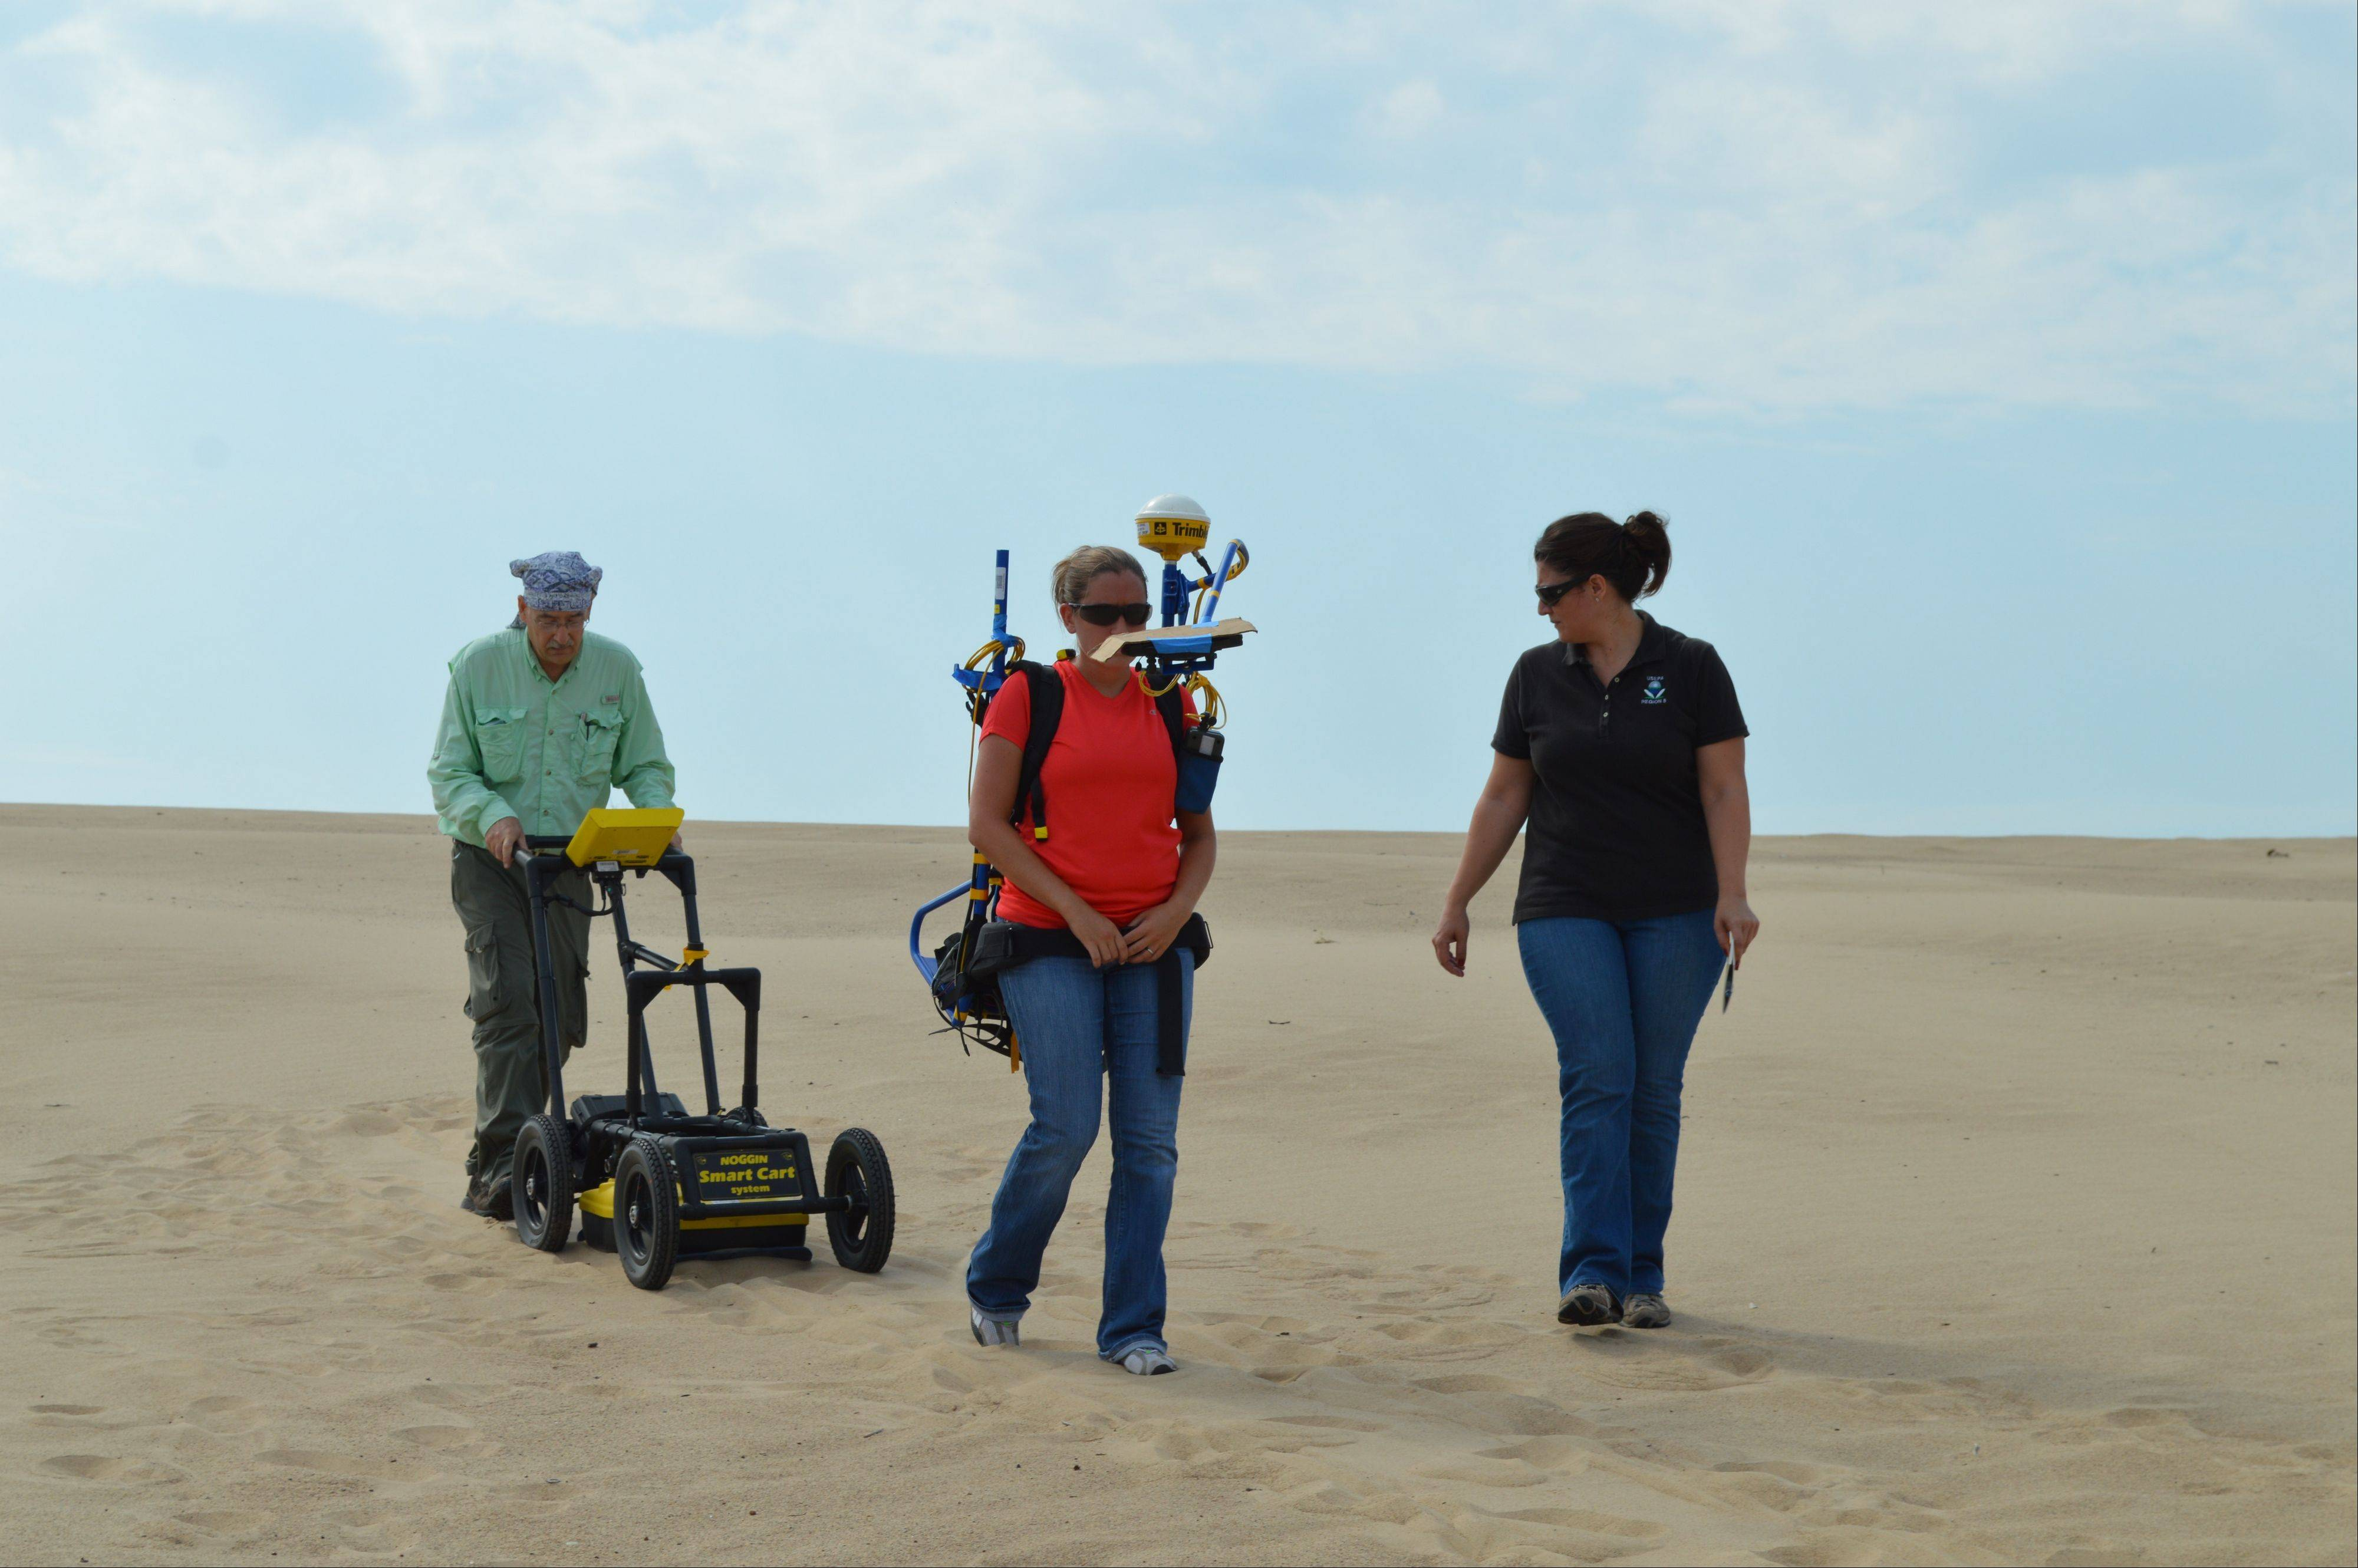 Environmental Protection Agency scientists use ground-penetrating radar equipment at Mount Baldy at the Indiana Dunes National Lakeshore in August 2013, near Michigan City, Ind. They were gathering data to determine the safety of a northern Indiana sand dune that collapsed onto a 6-year-old Illinois boy.